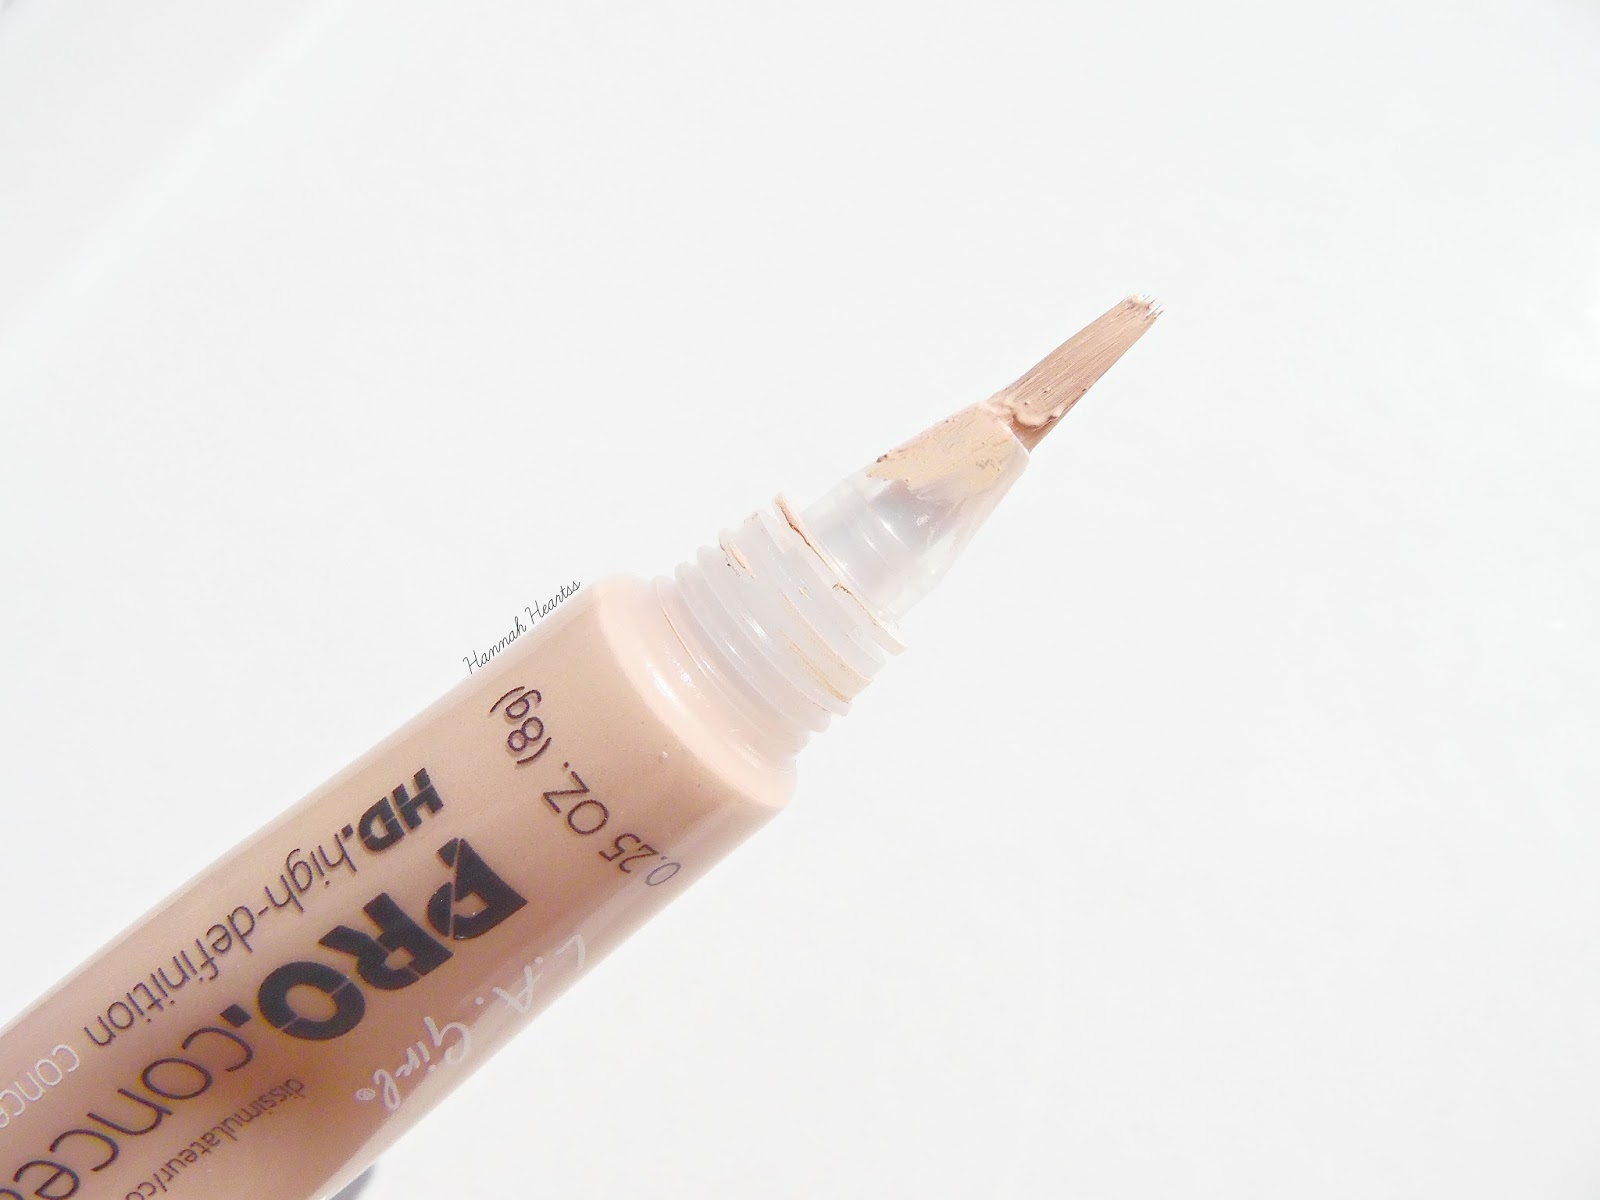 LA Girl Pro Conceal HD Concealer Review